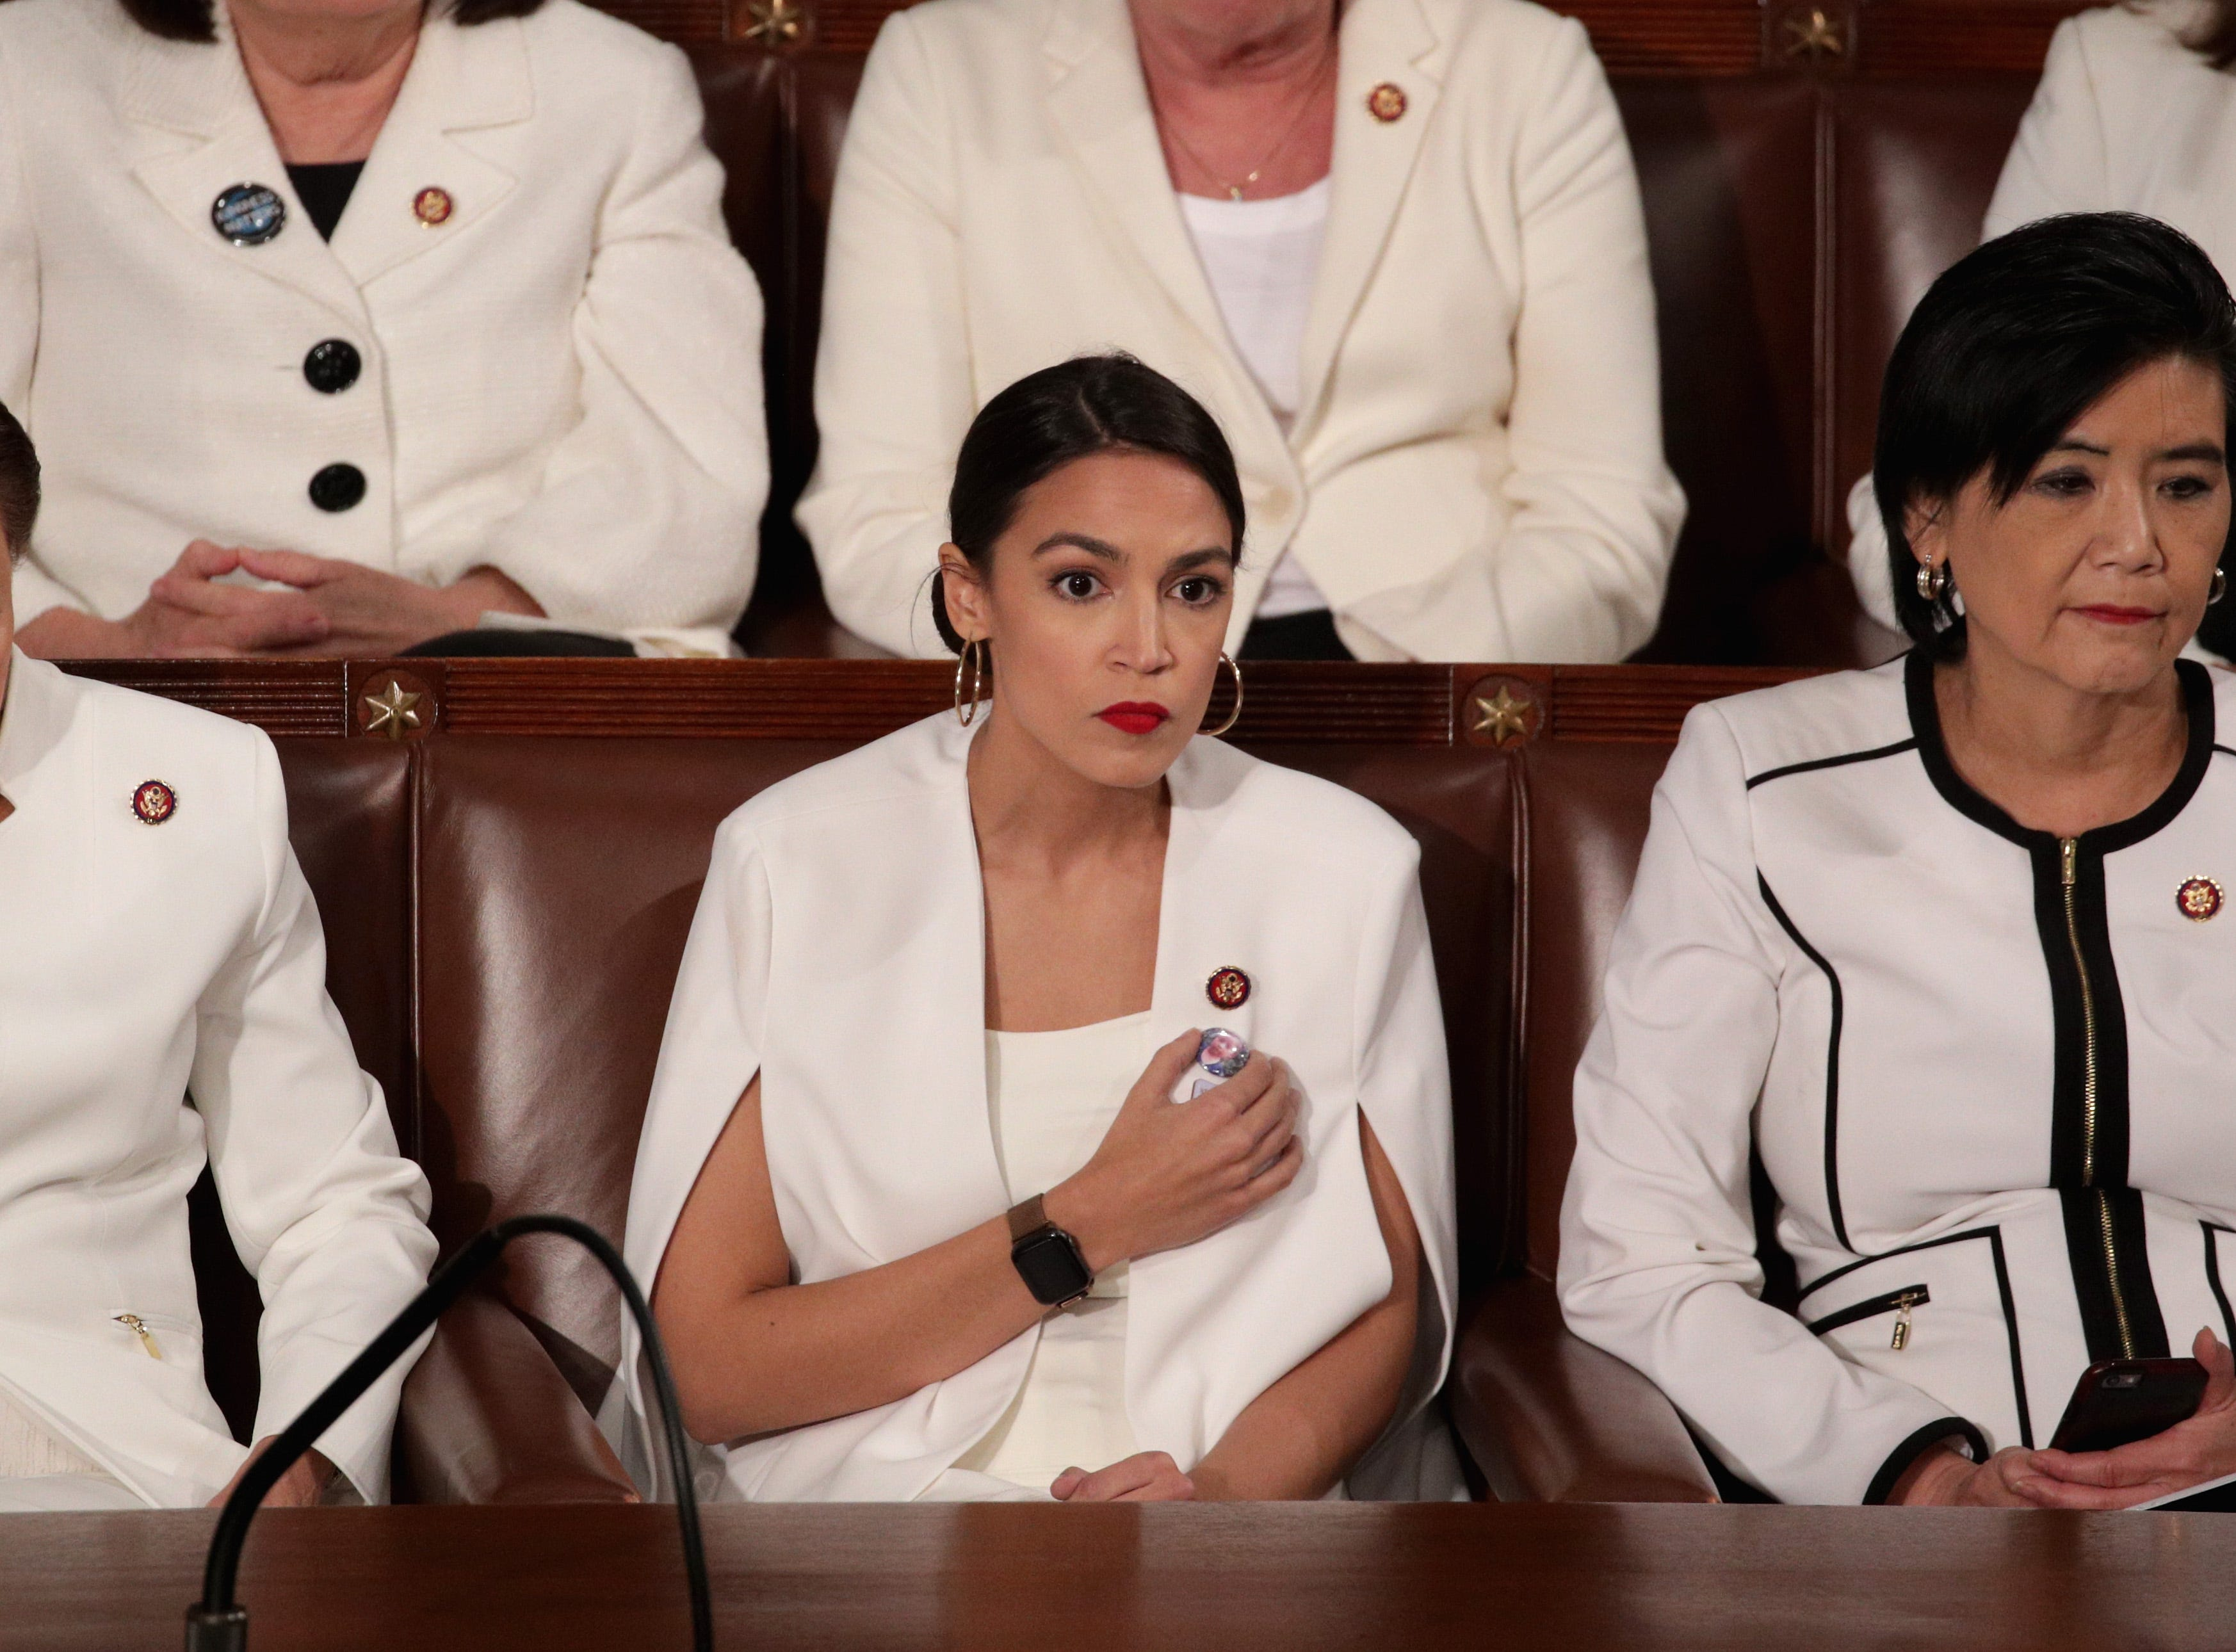 6a8a7bf0 Alexandria Ocasio-Cortez responds to tweet: Why should I be 'spirited and  warm' at State of the Union? 4 Months ago